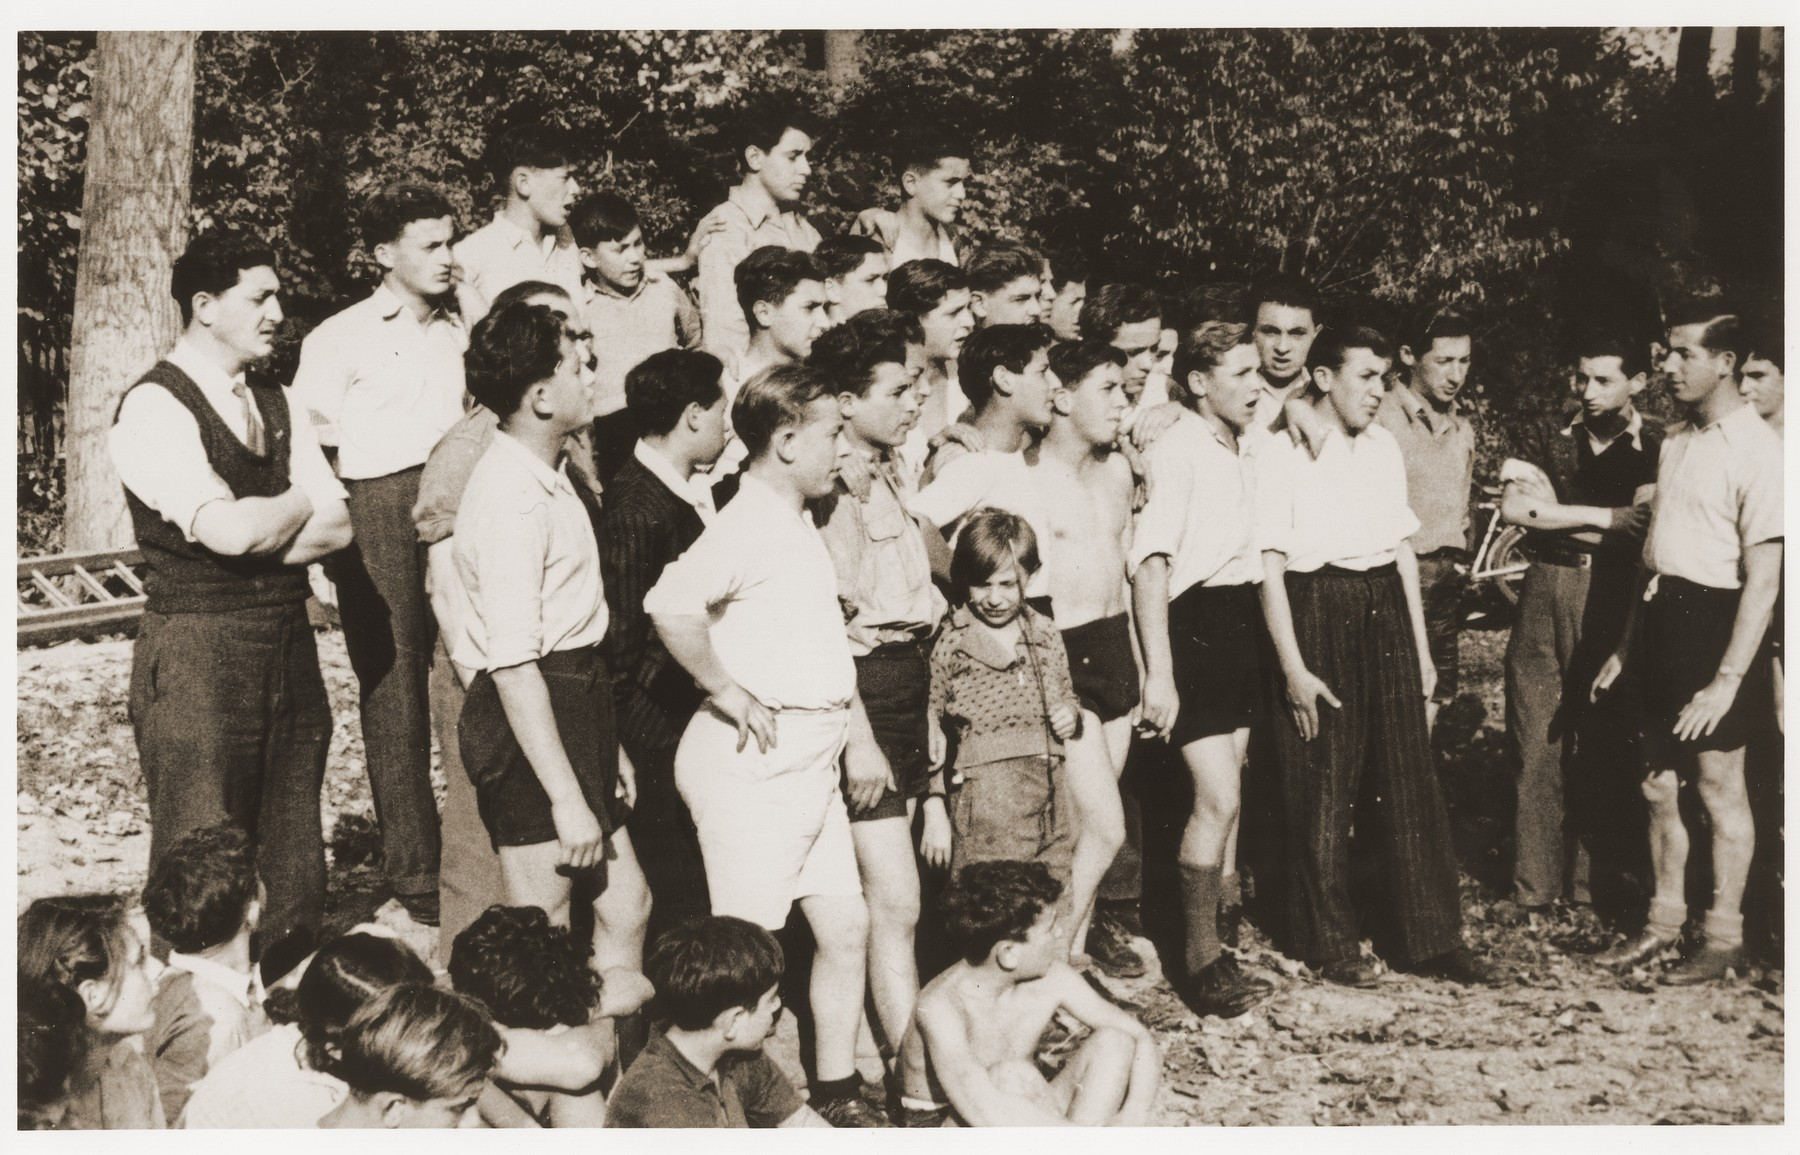 Jewish DP youth participate in a field day near the OSE (Oeuvre de Secours aux Enfants) children's home in Le Vésinet.  Among those pictured are Albert Dymant, Andre Dymant, Henry Dymant, Maurice Freilich, Salek Finkelstein, Marek Goldfinger, Natek Klugman, Kozuch, Ralph Lewen, Bubi Lewi, Usher, Romek Wajsman, and Lolek Weinstein.  [See enclosed sheet for precise identification.]